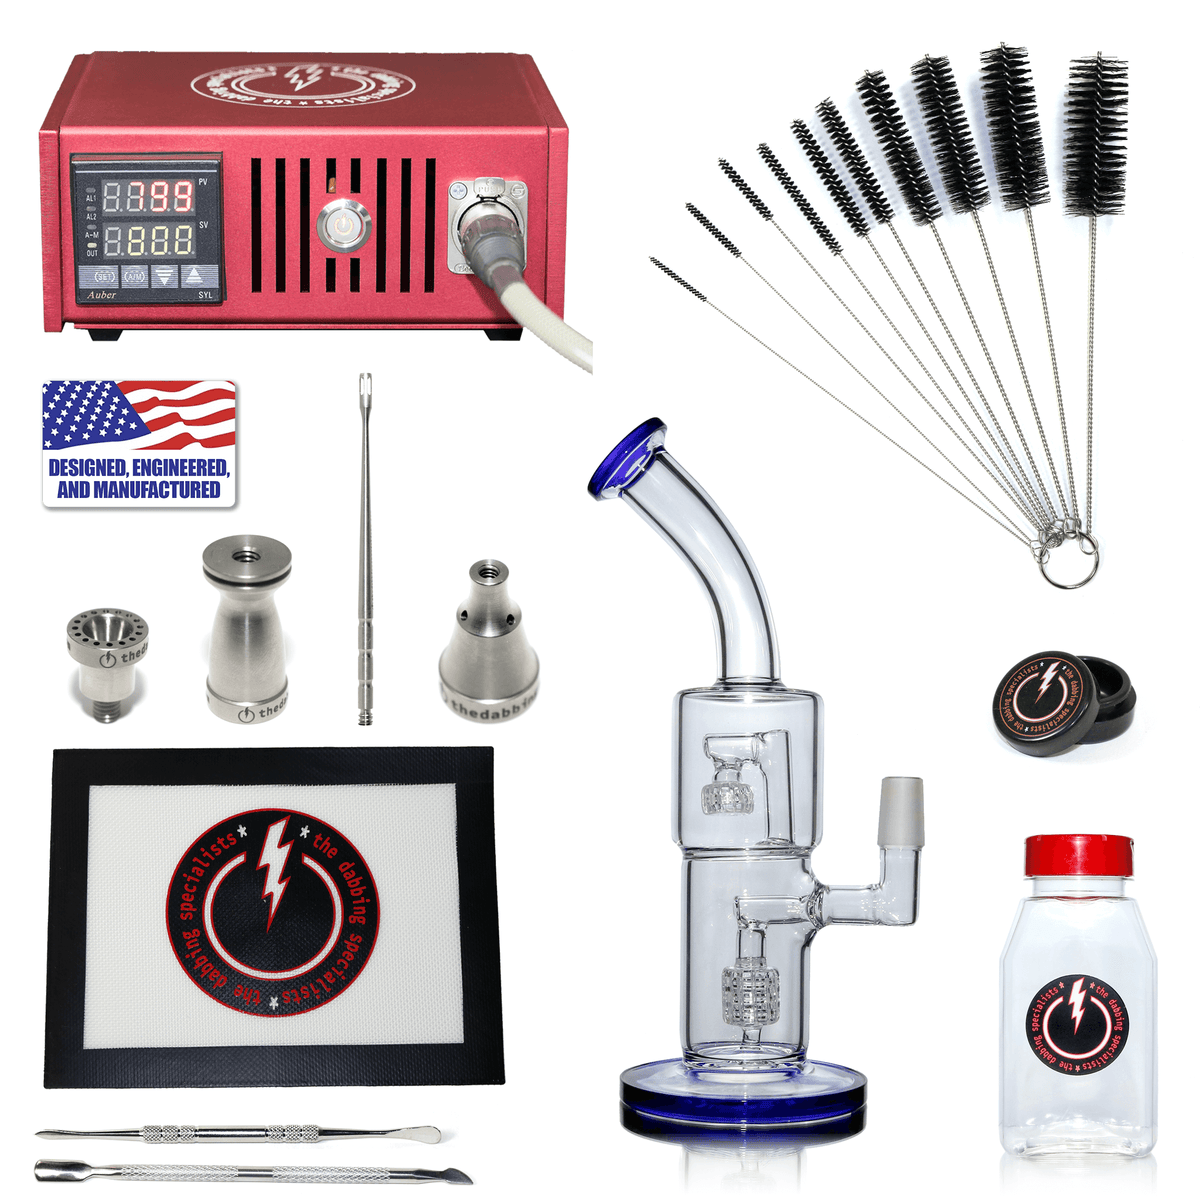 The Complete TDS Dabbing Enail Kit - Economy Version in Red